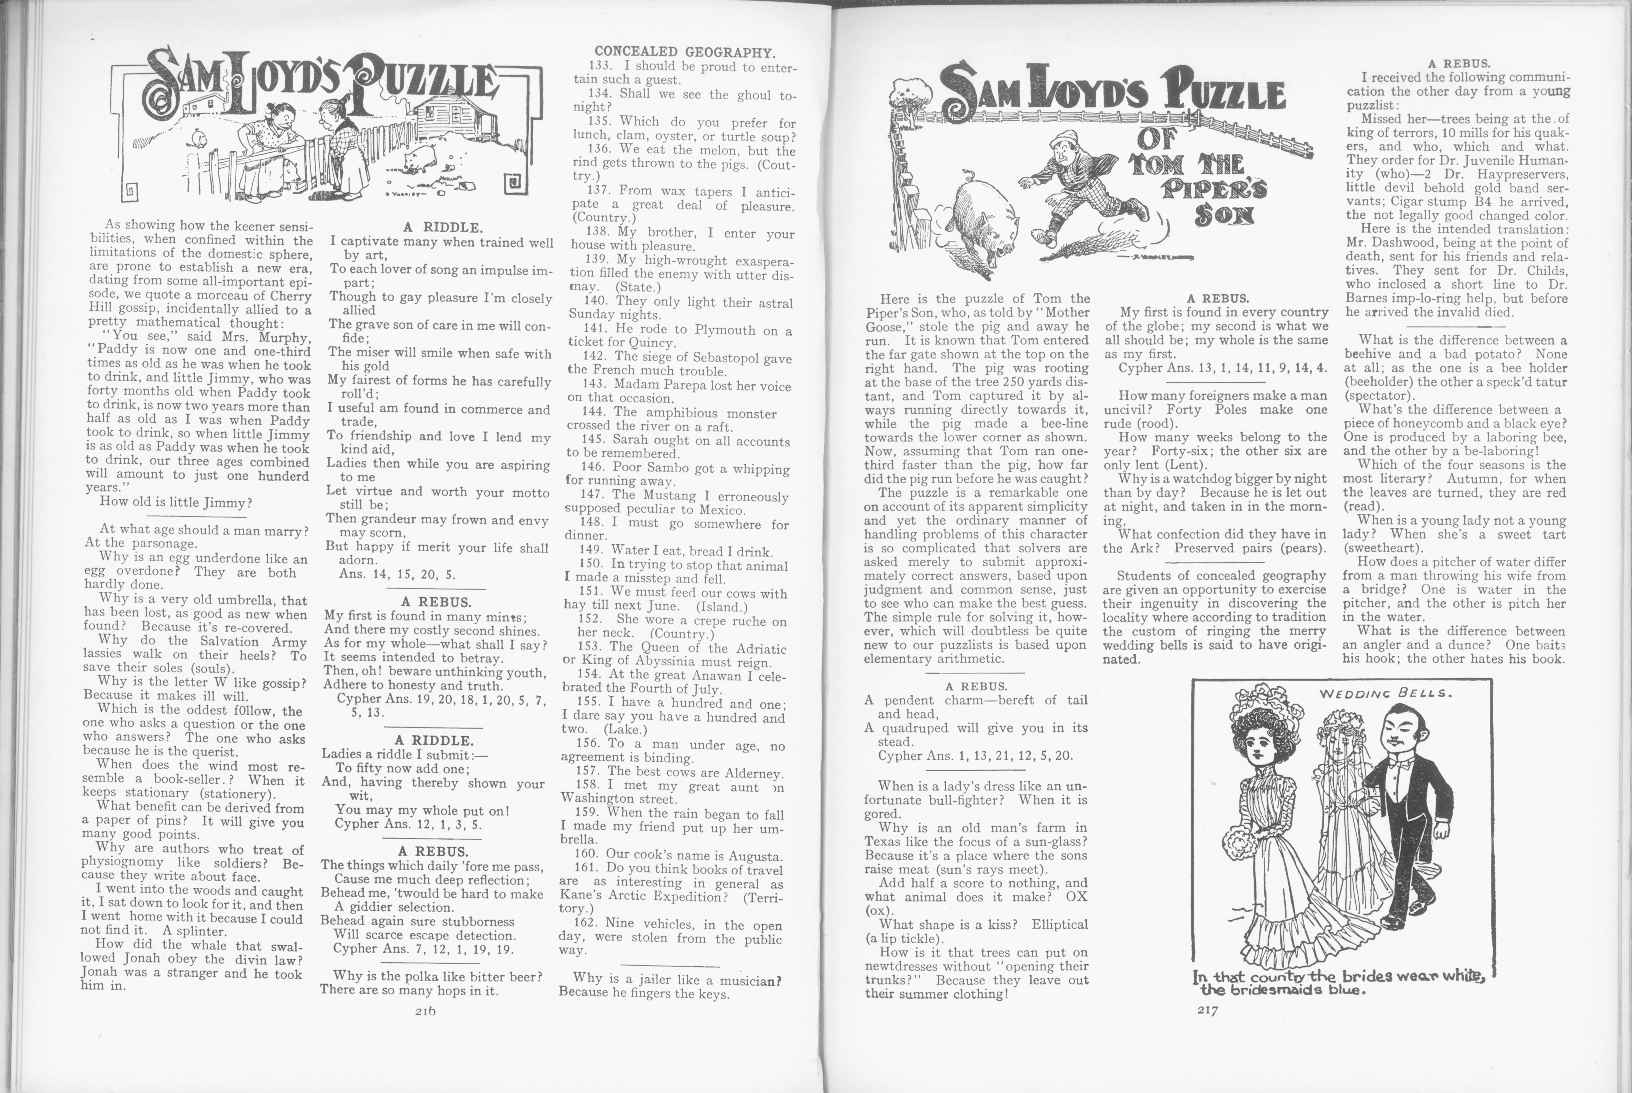 Sam Loyd - Cyclopedia of Puzzles - page 216-217